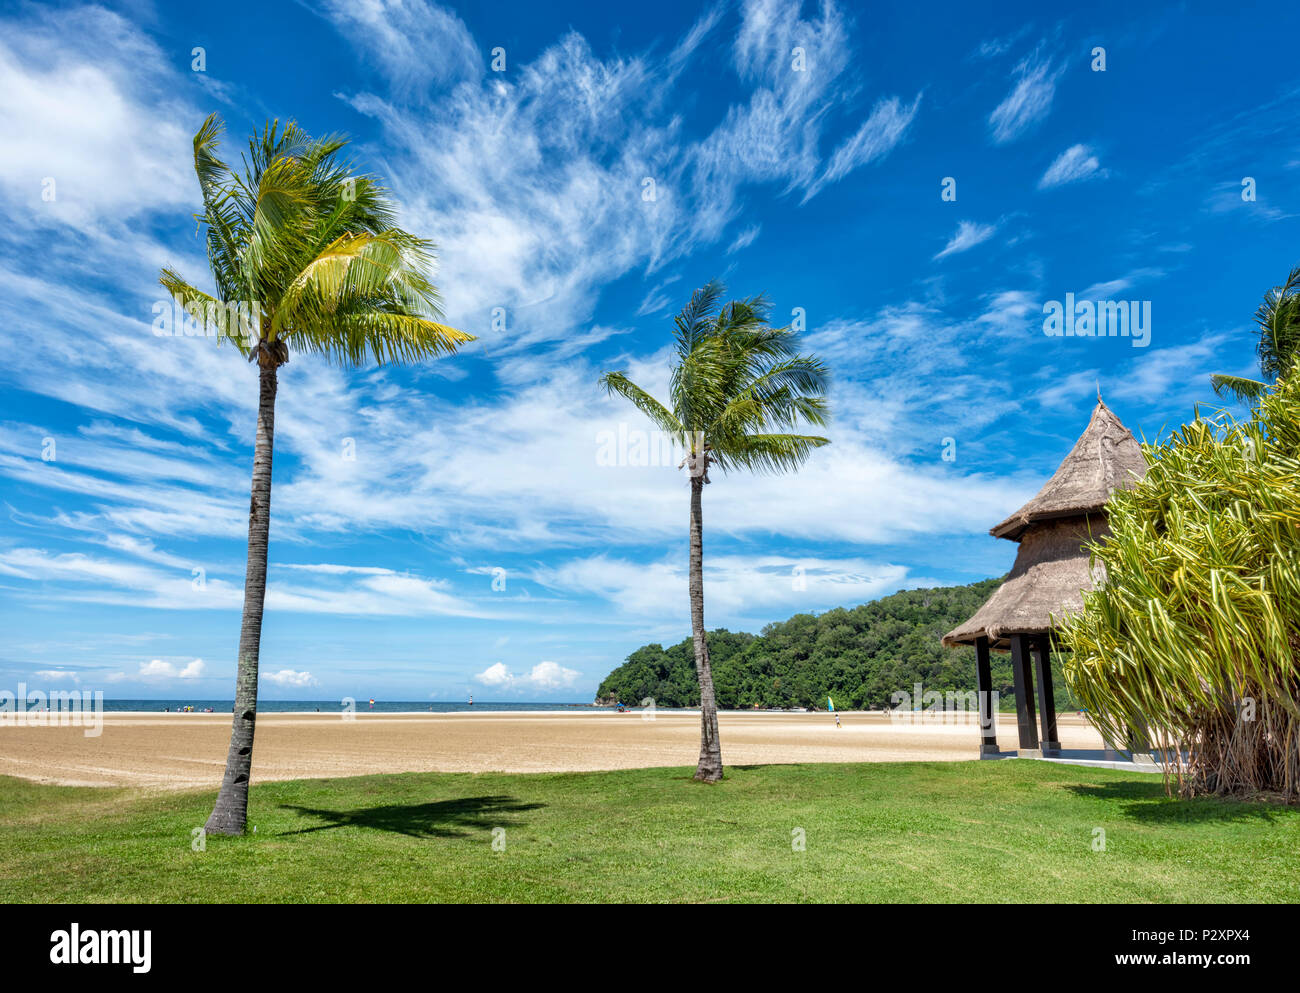 Two palm trees on a white sand beach at Kota Kinabalu, Borneo, Malaysia on the edge of the South China Sea - Stock Image